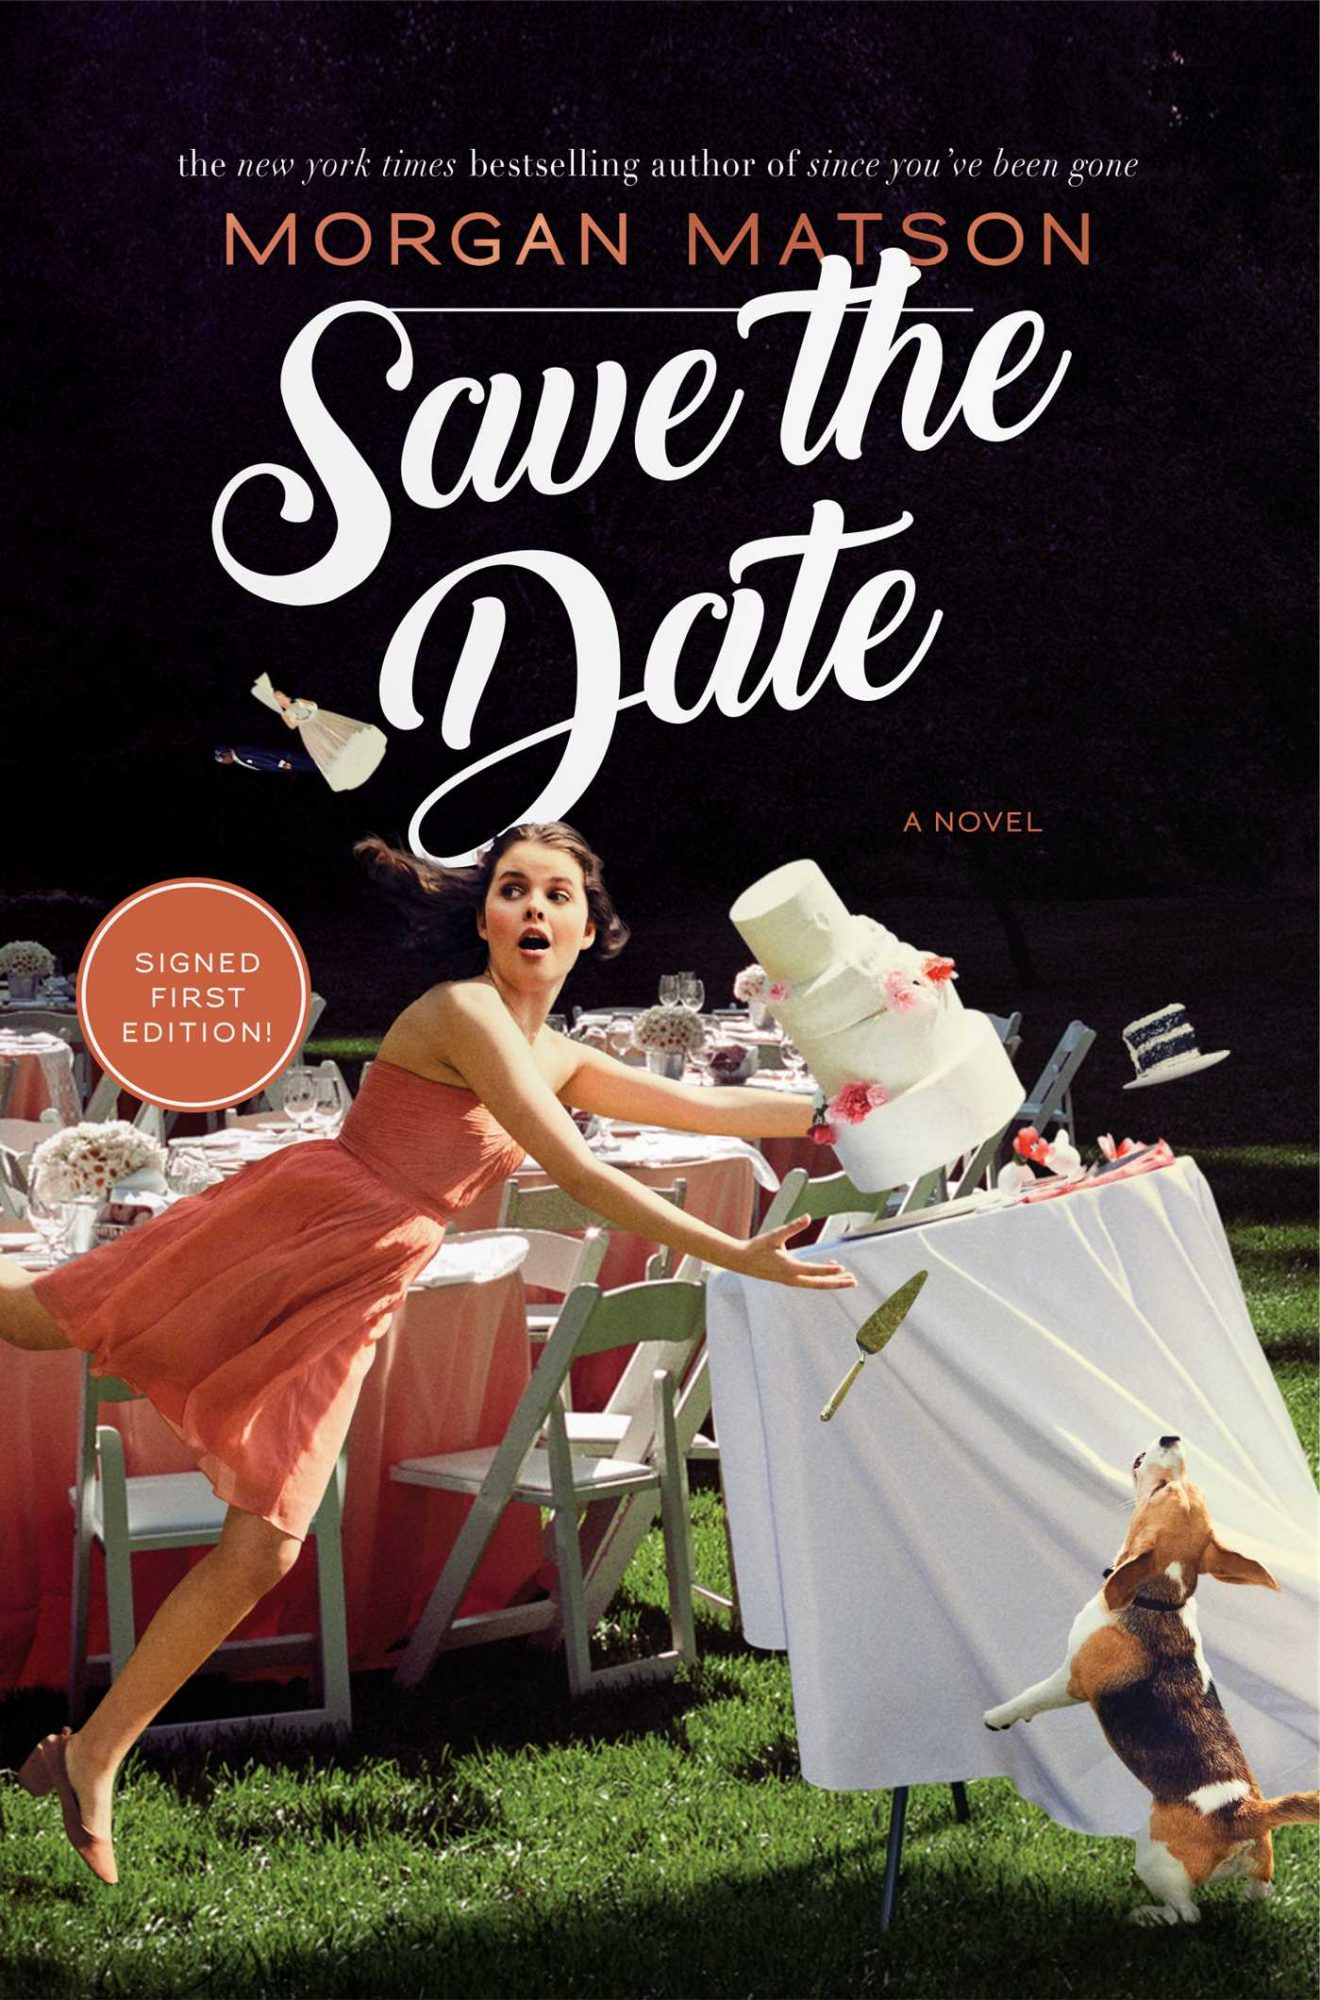 picture-of-save-the-date-book-photo.jpg